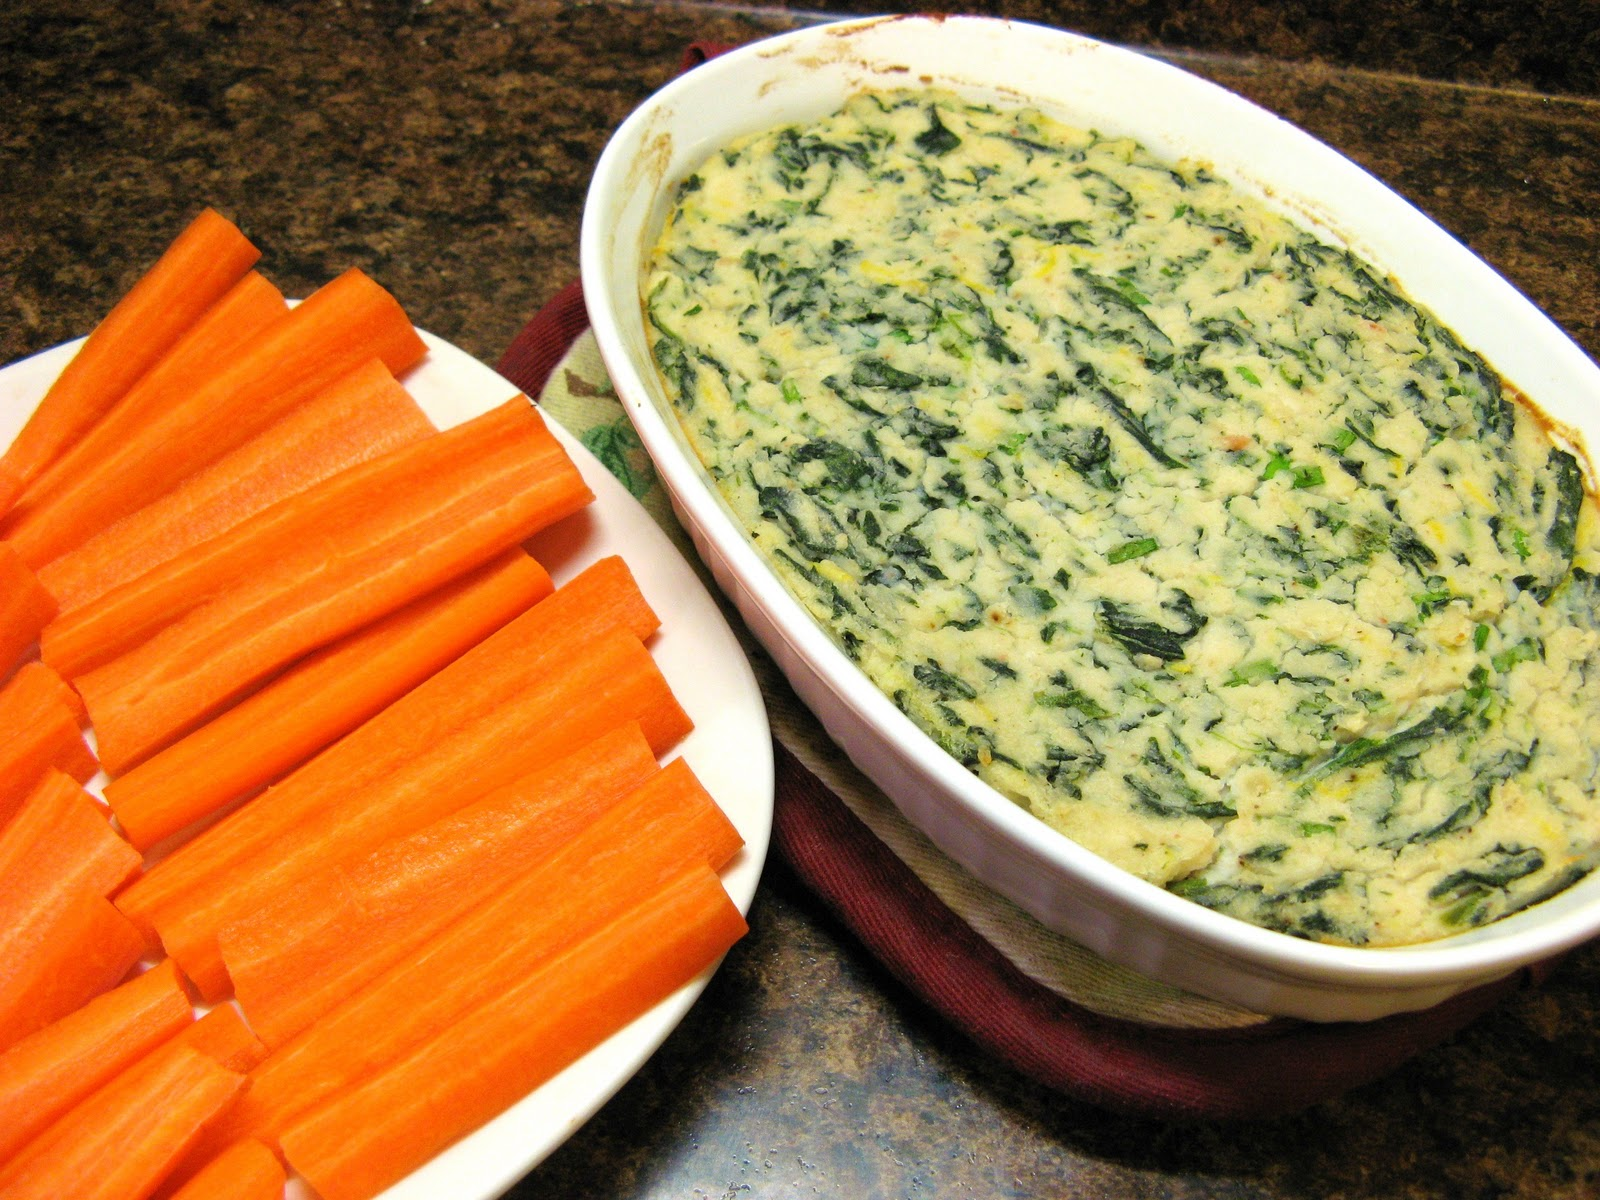 The Well-Fed Newlyweds: Warm Spinach and White Bean Dip